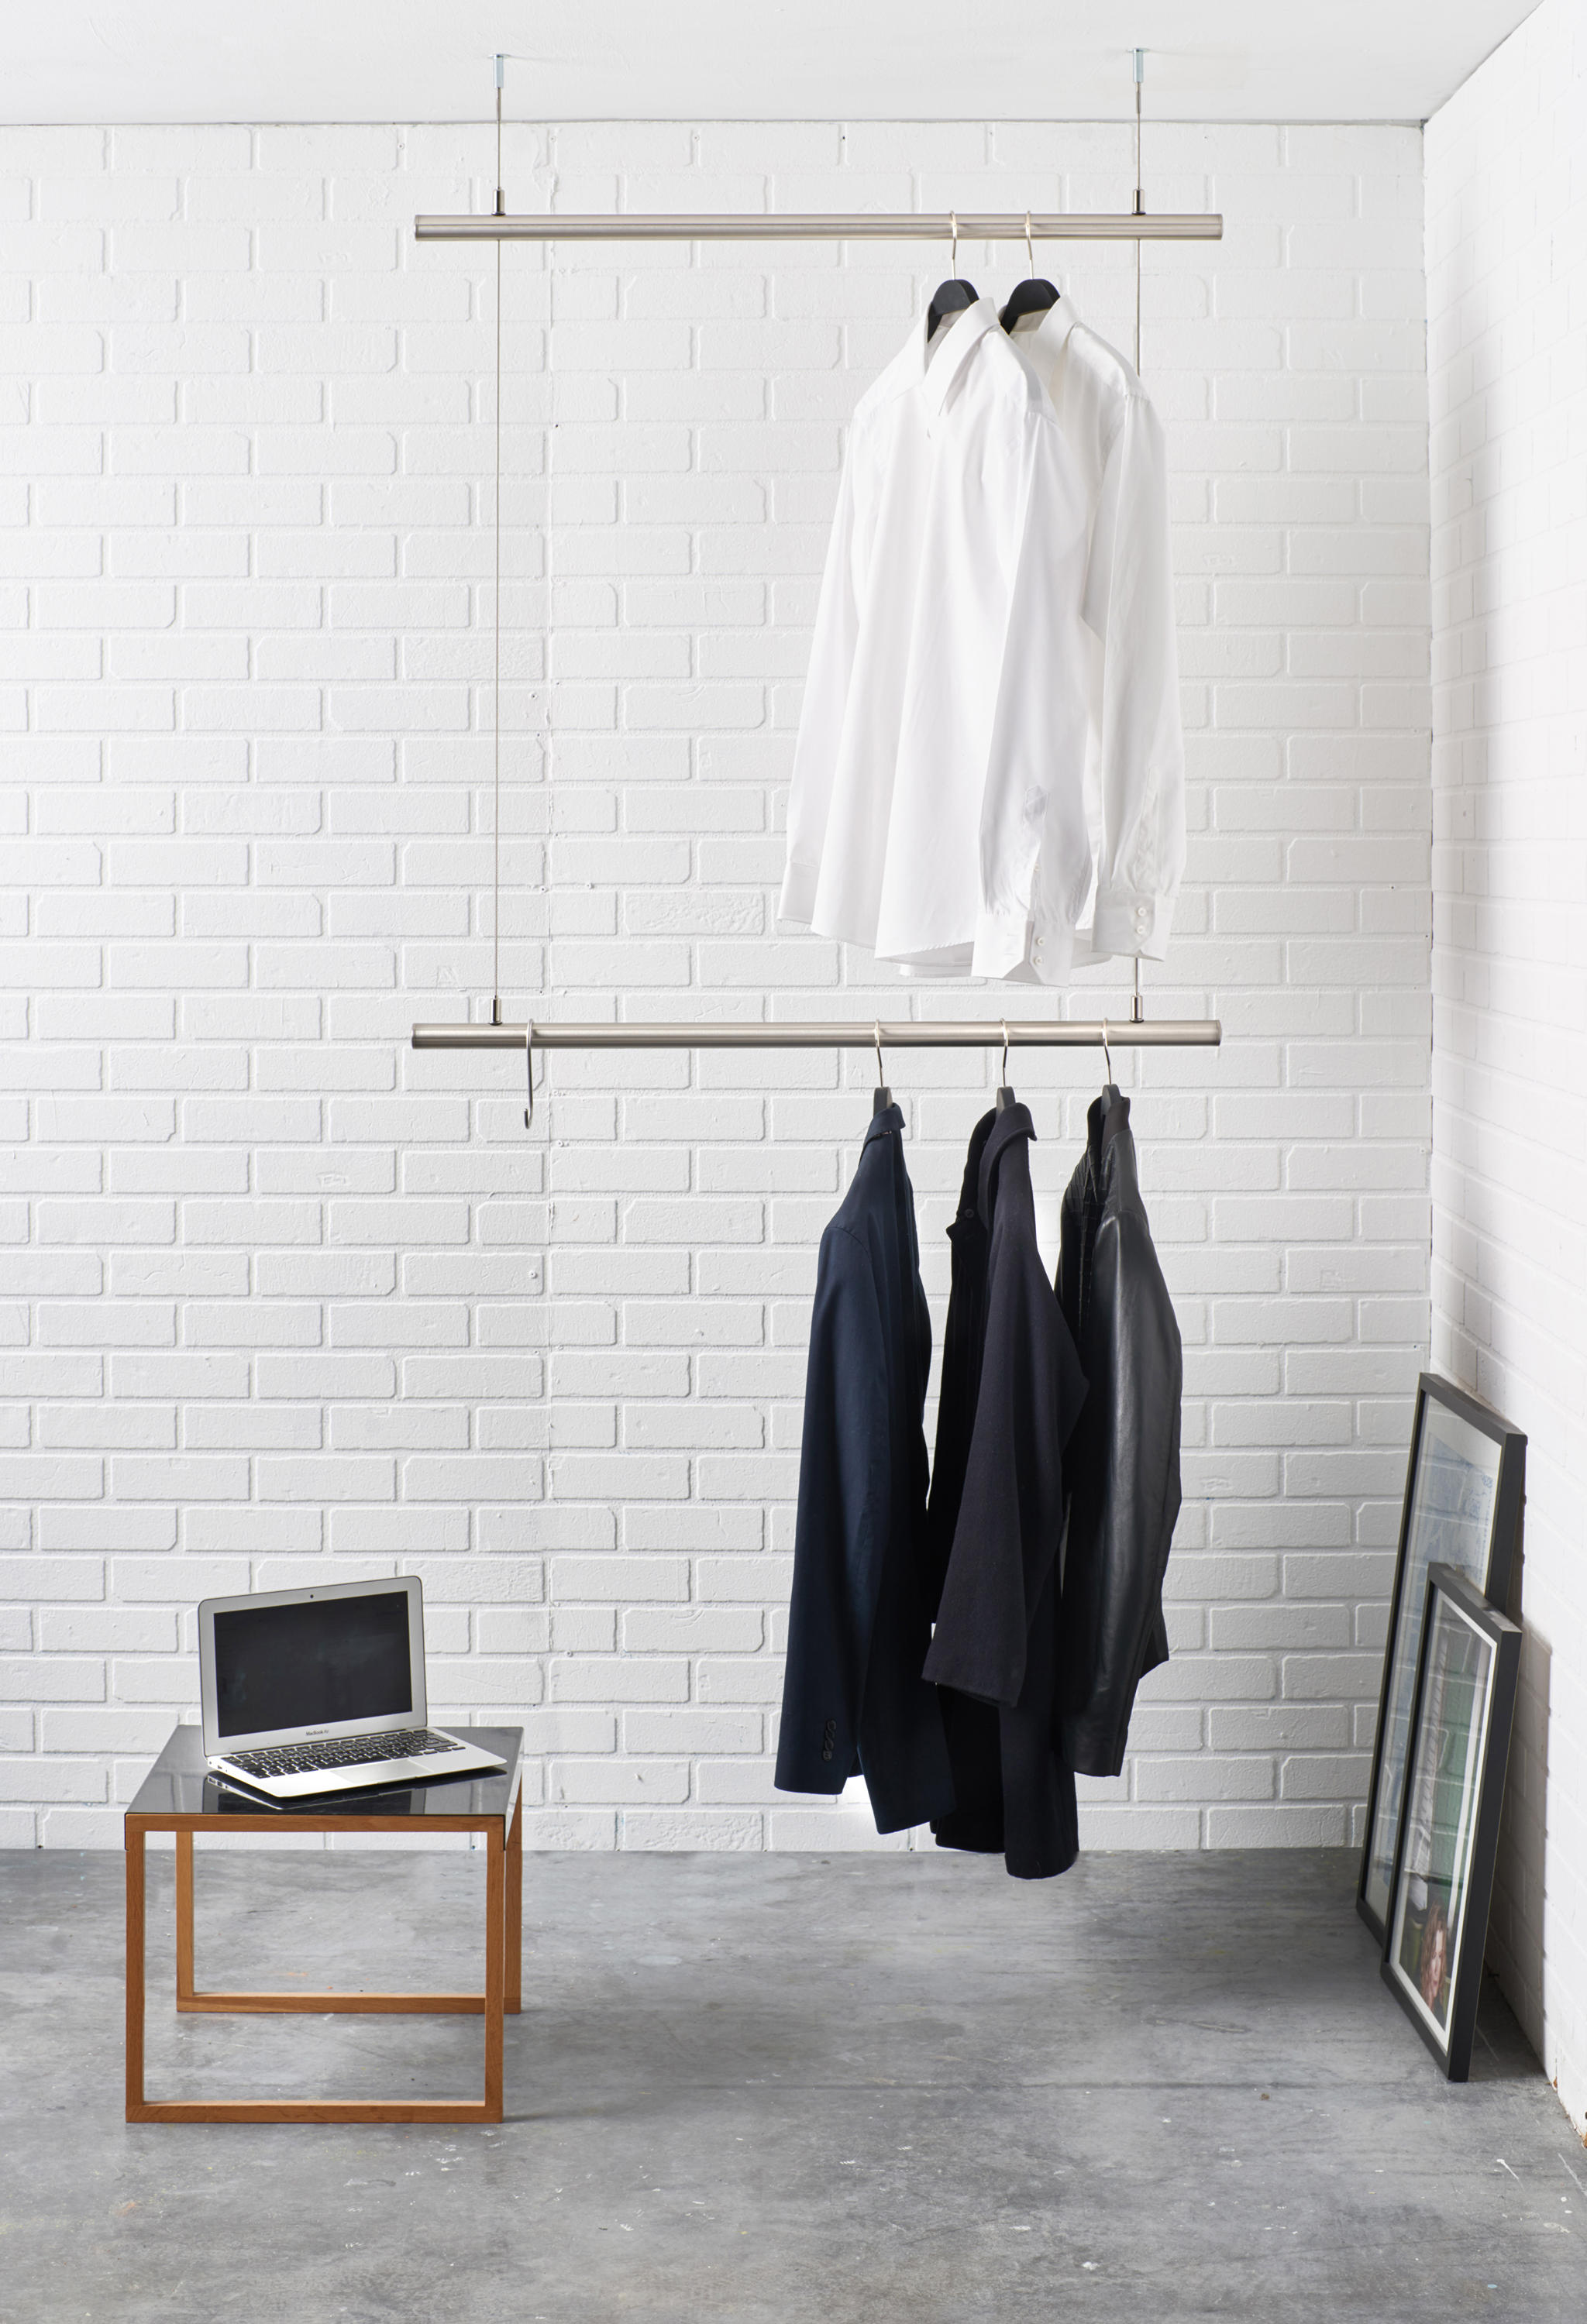 diy clothes dsc dandylione rack hanging